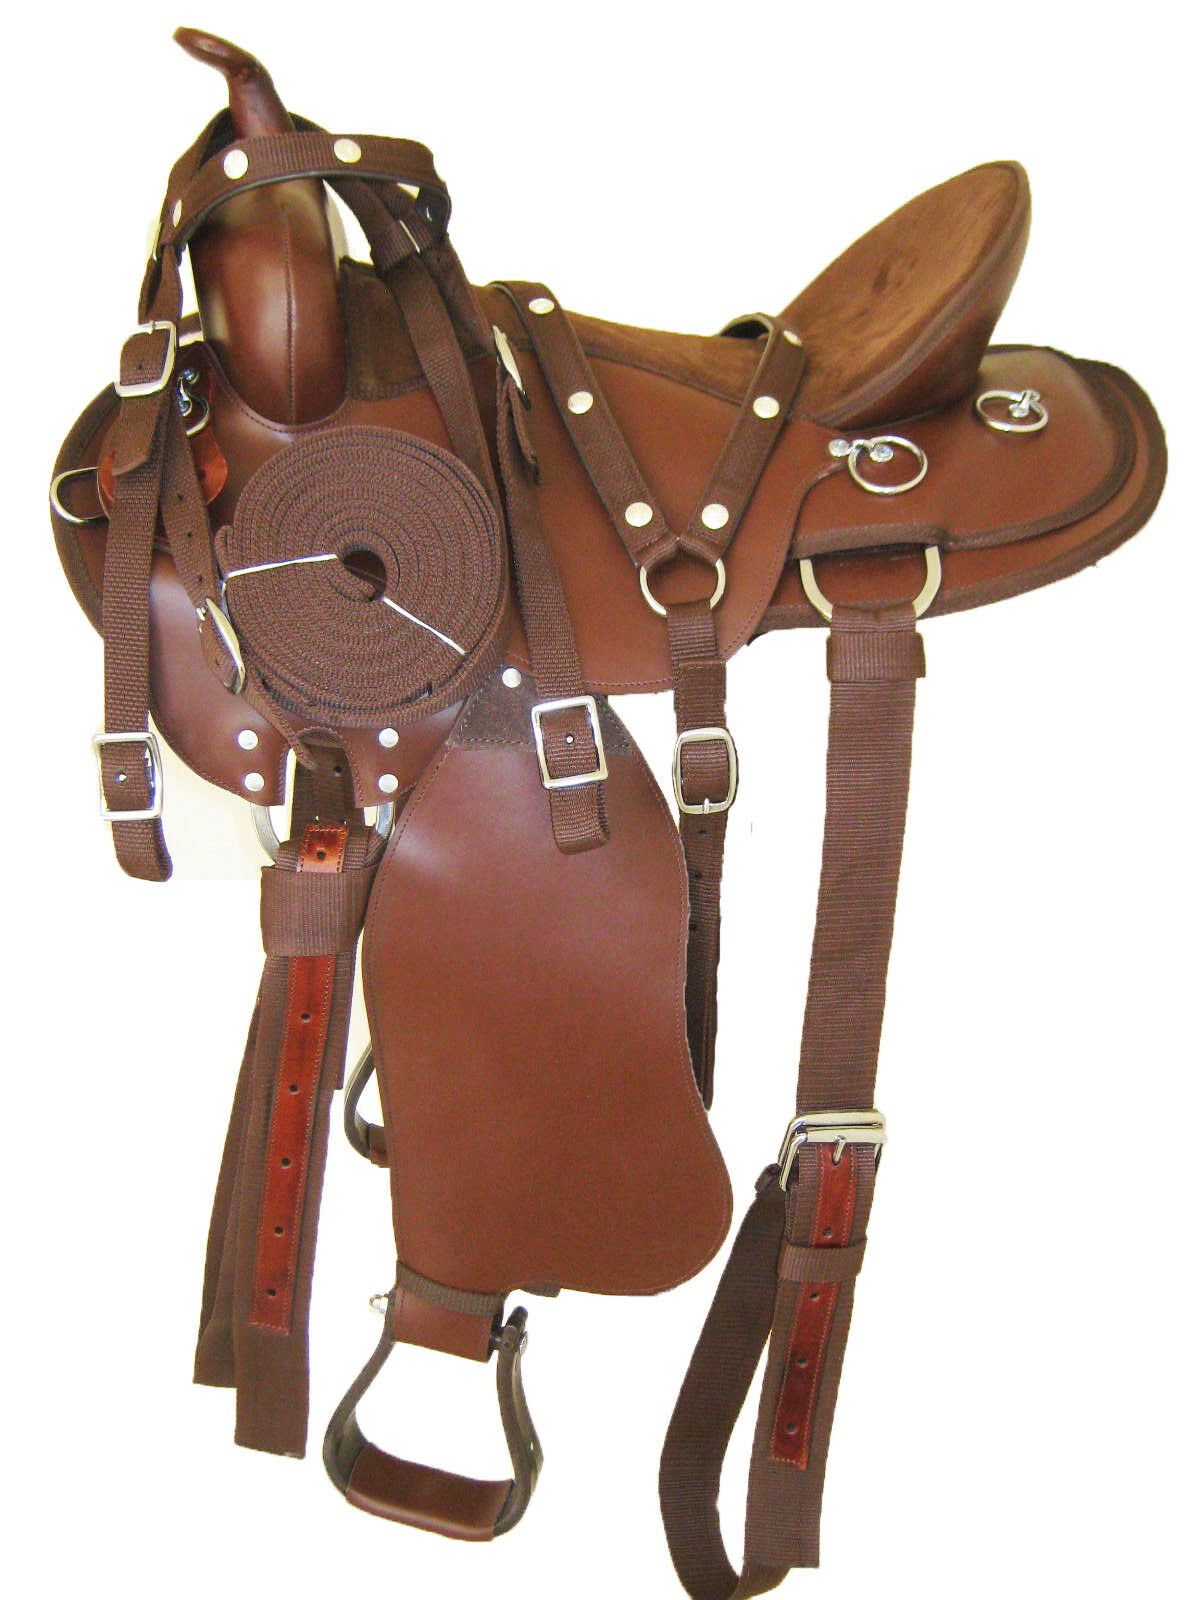 'THSL'  WESTERN GAITED HORSE SYNTHETIC SADDLE PKG 1717.5 TAN Marronee 1011BR